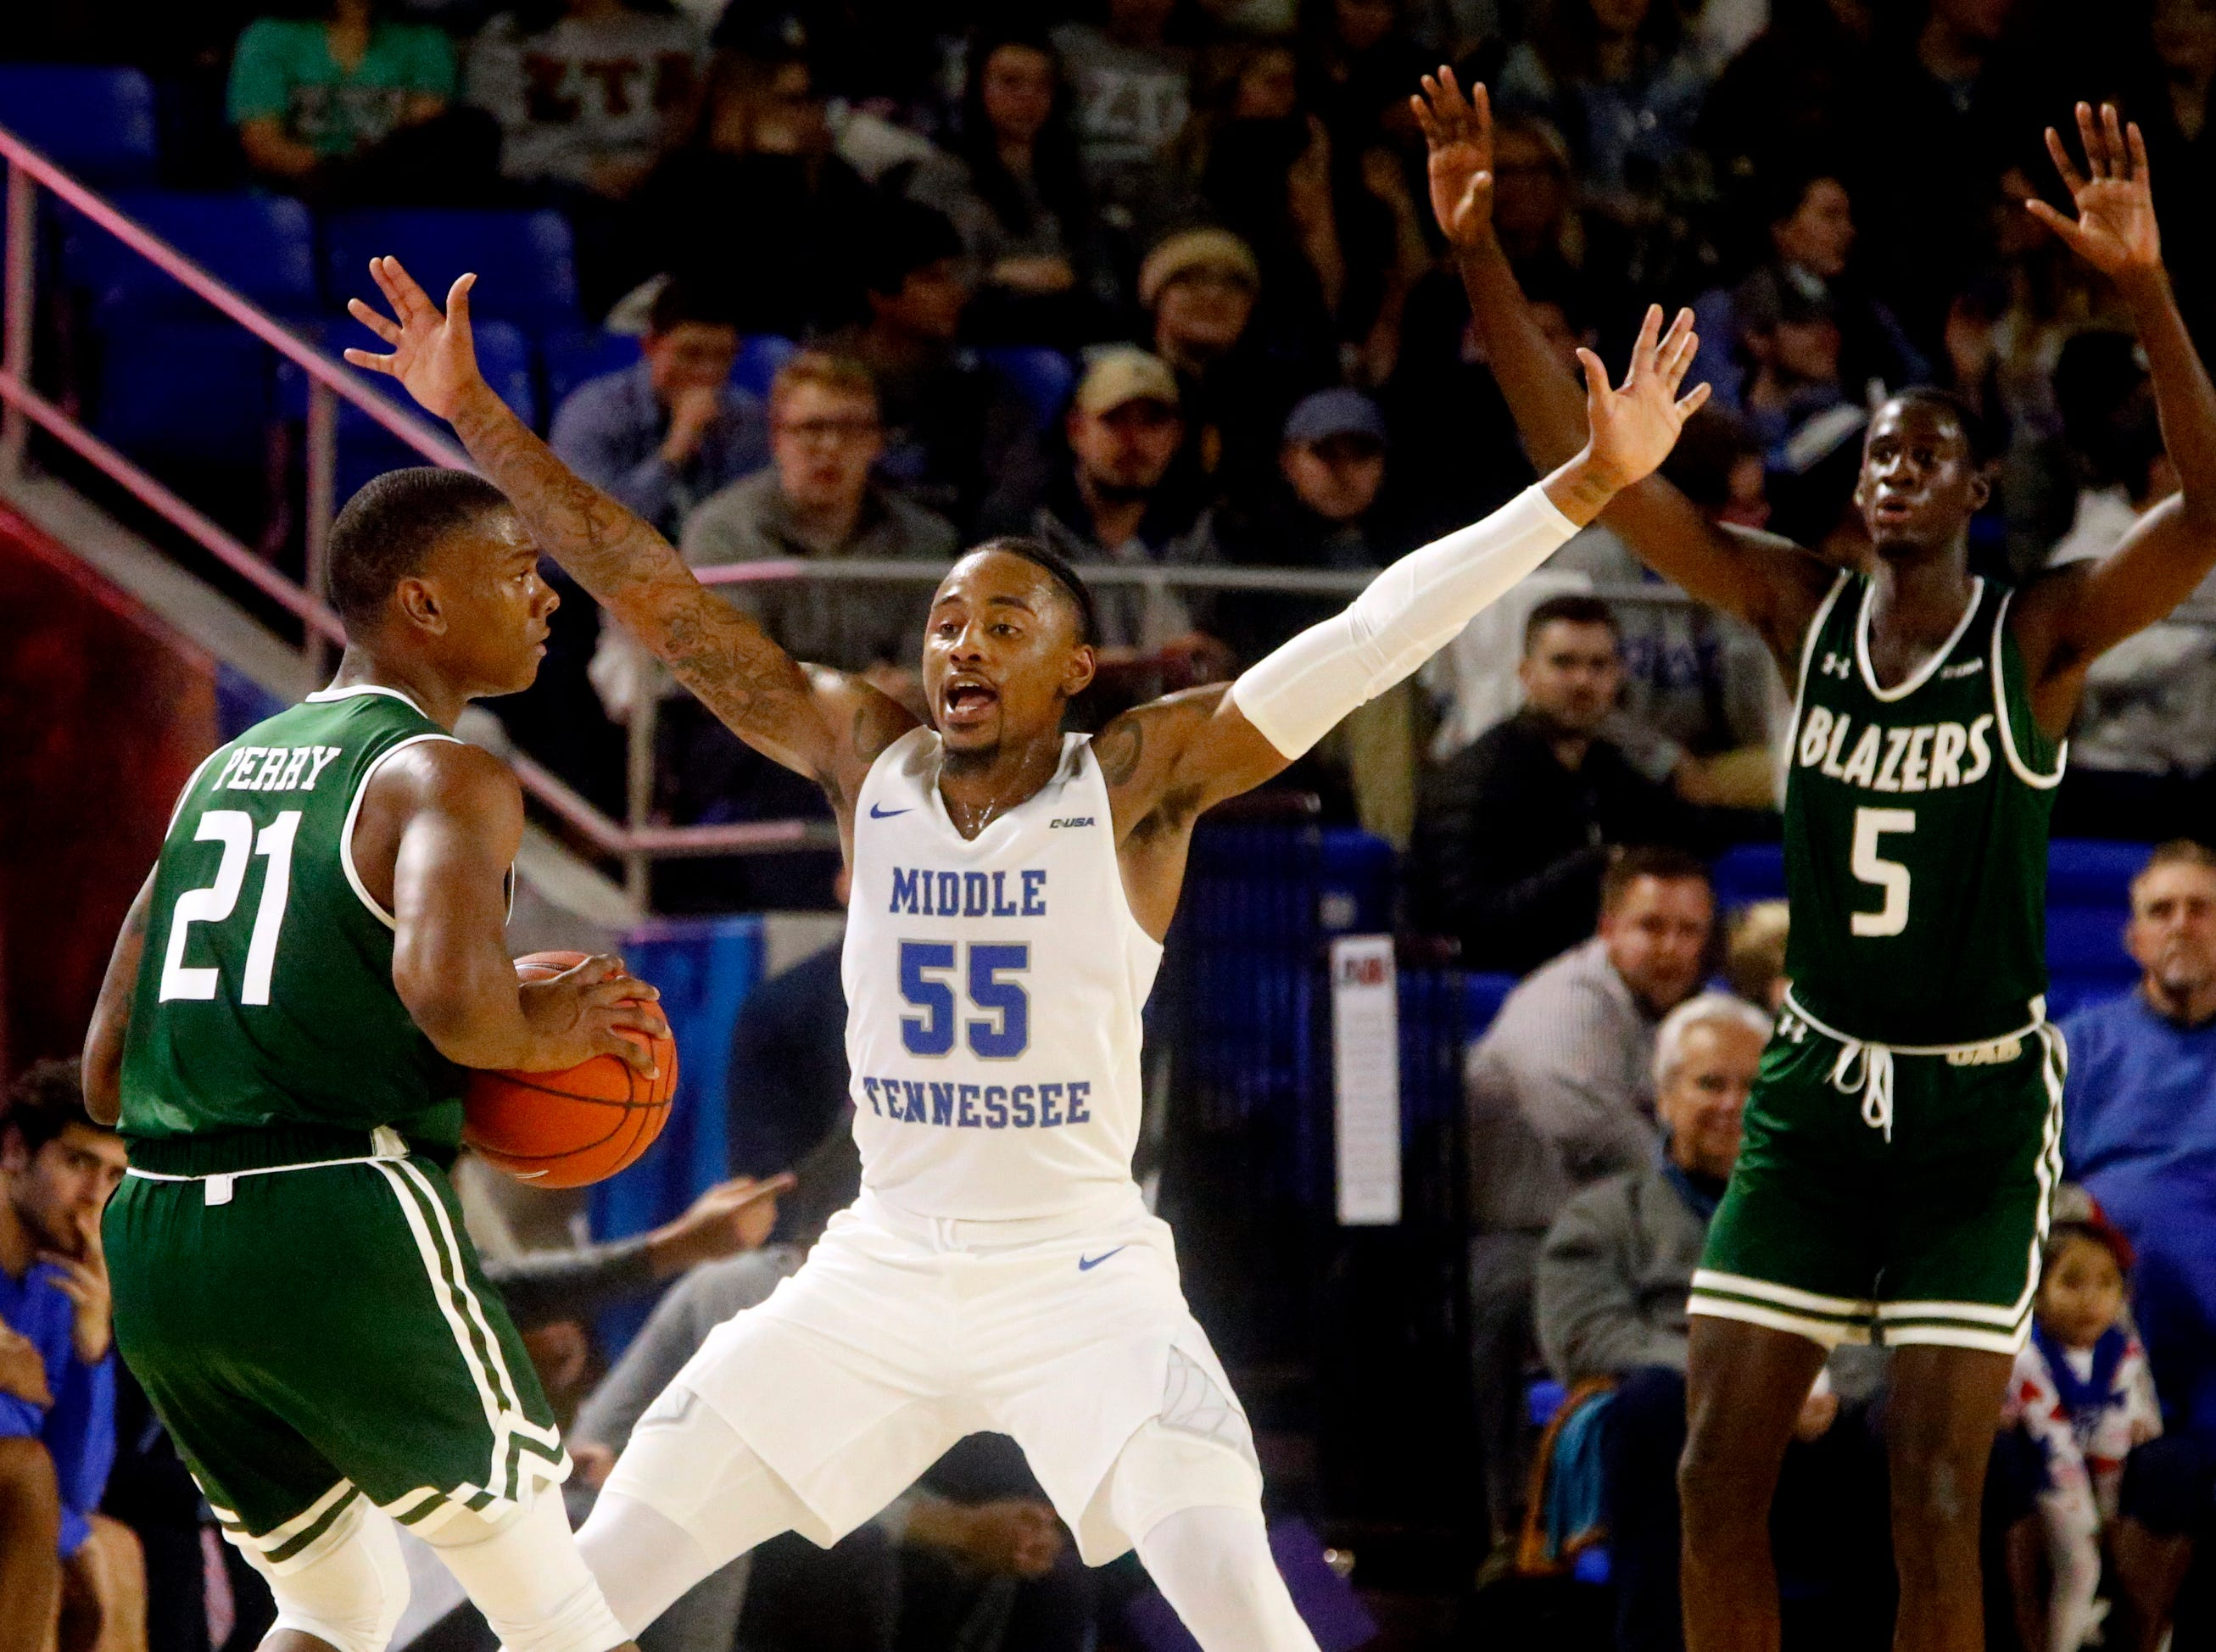 MTSU guard Antonio Green (55) guards UAB's guard Jalen Perry (21) as he looks for a player to pass to on Wednesday Jan. 30, 2019.